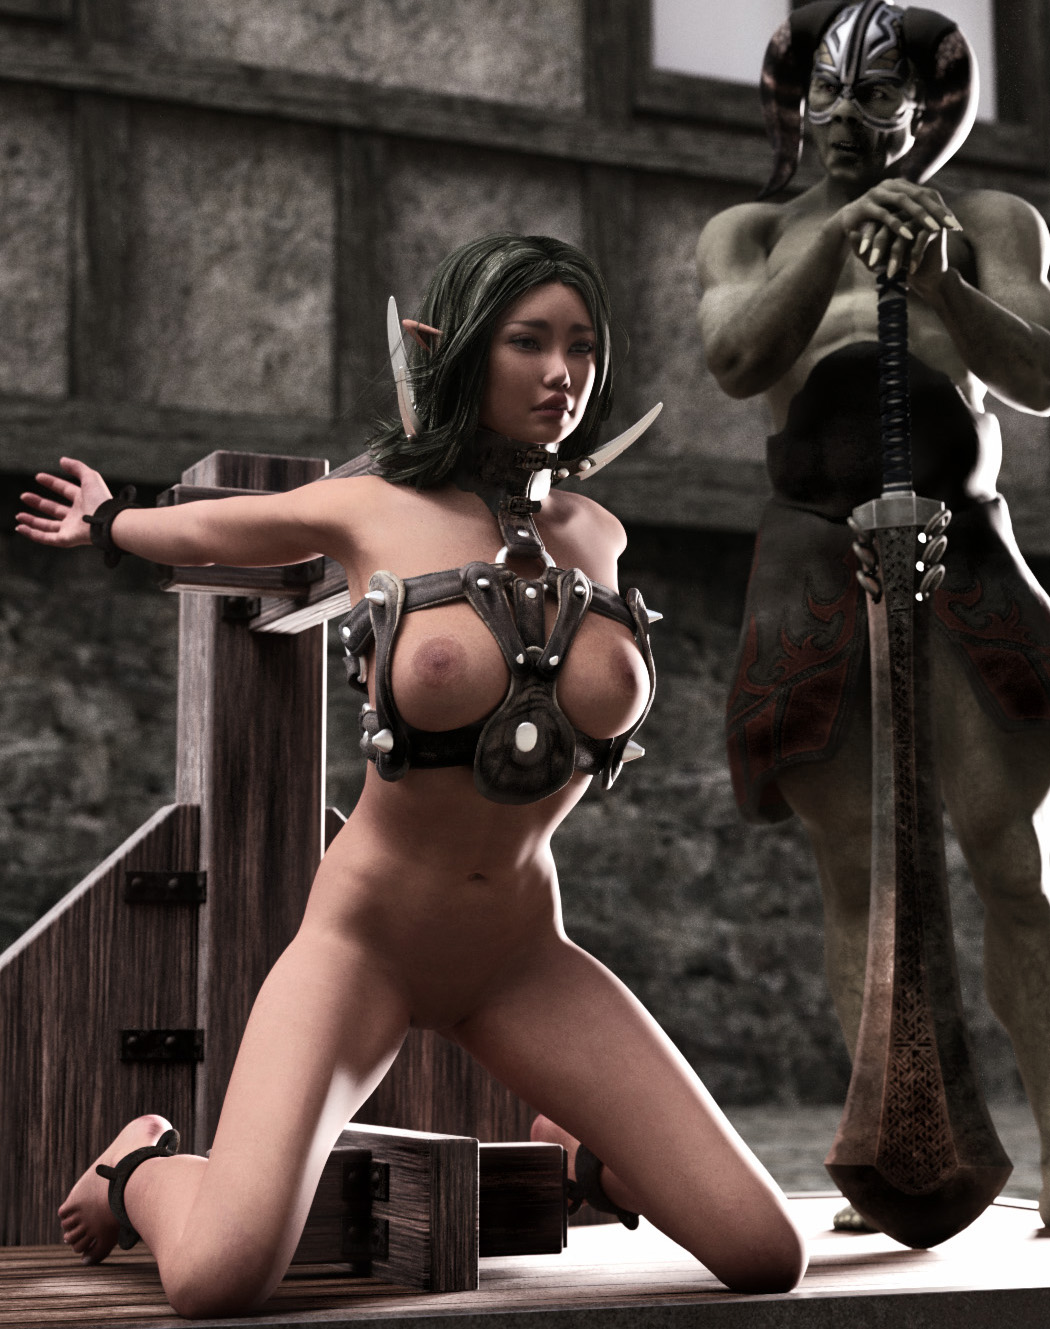 Elf warrior nude 3d pornos video